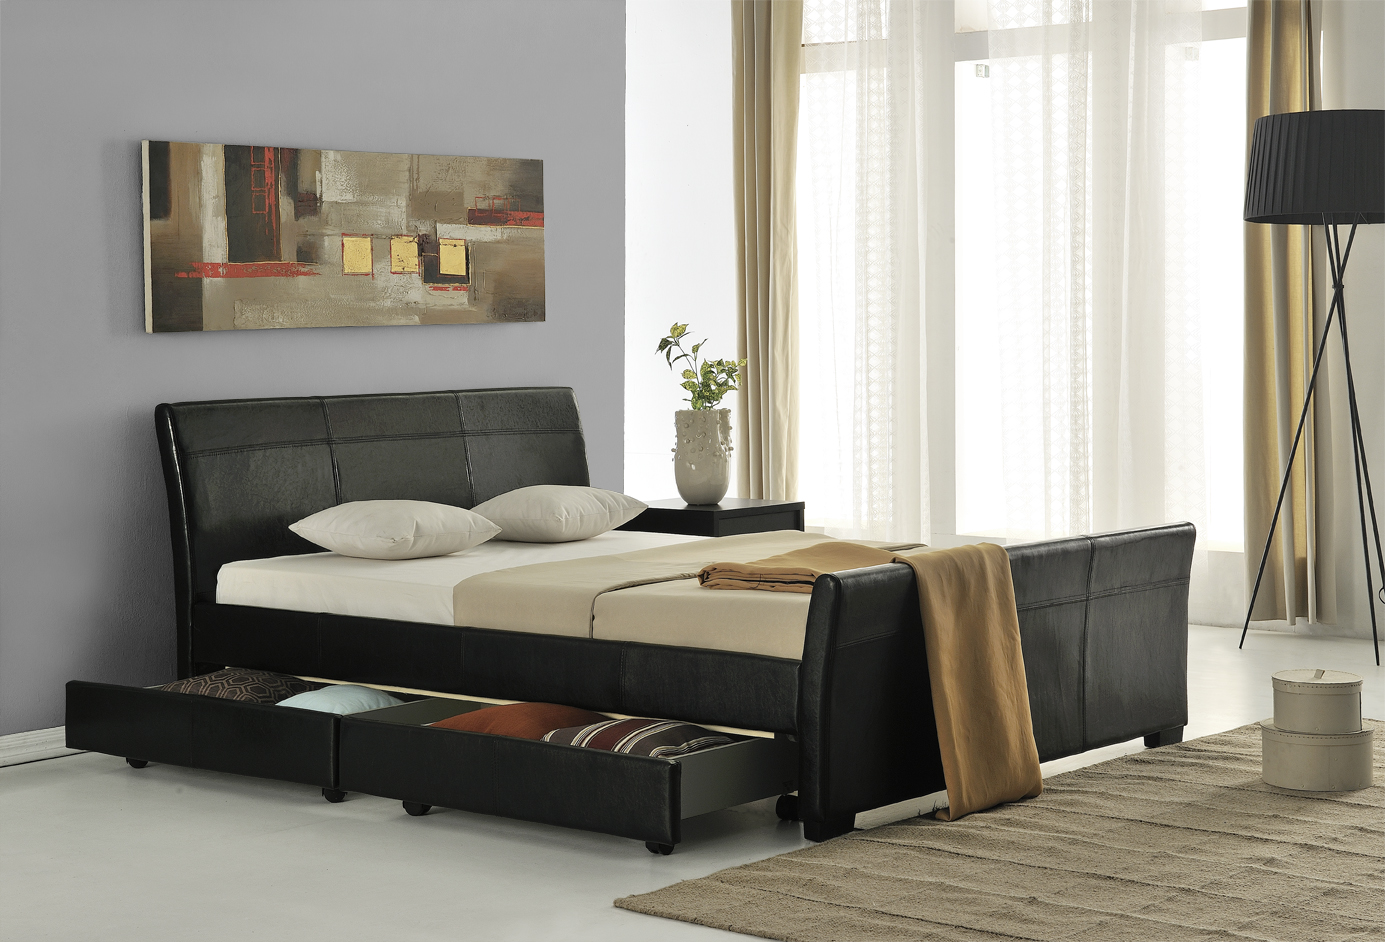 lederbett mit schubladen polsterbett bett 180x200 schwarz. Black Bedroom Furniture Sets. Home Design Ideas